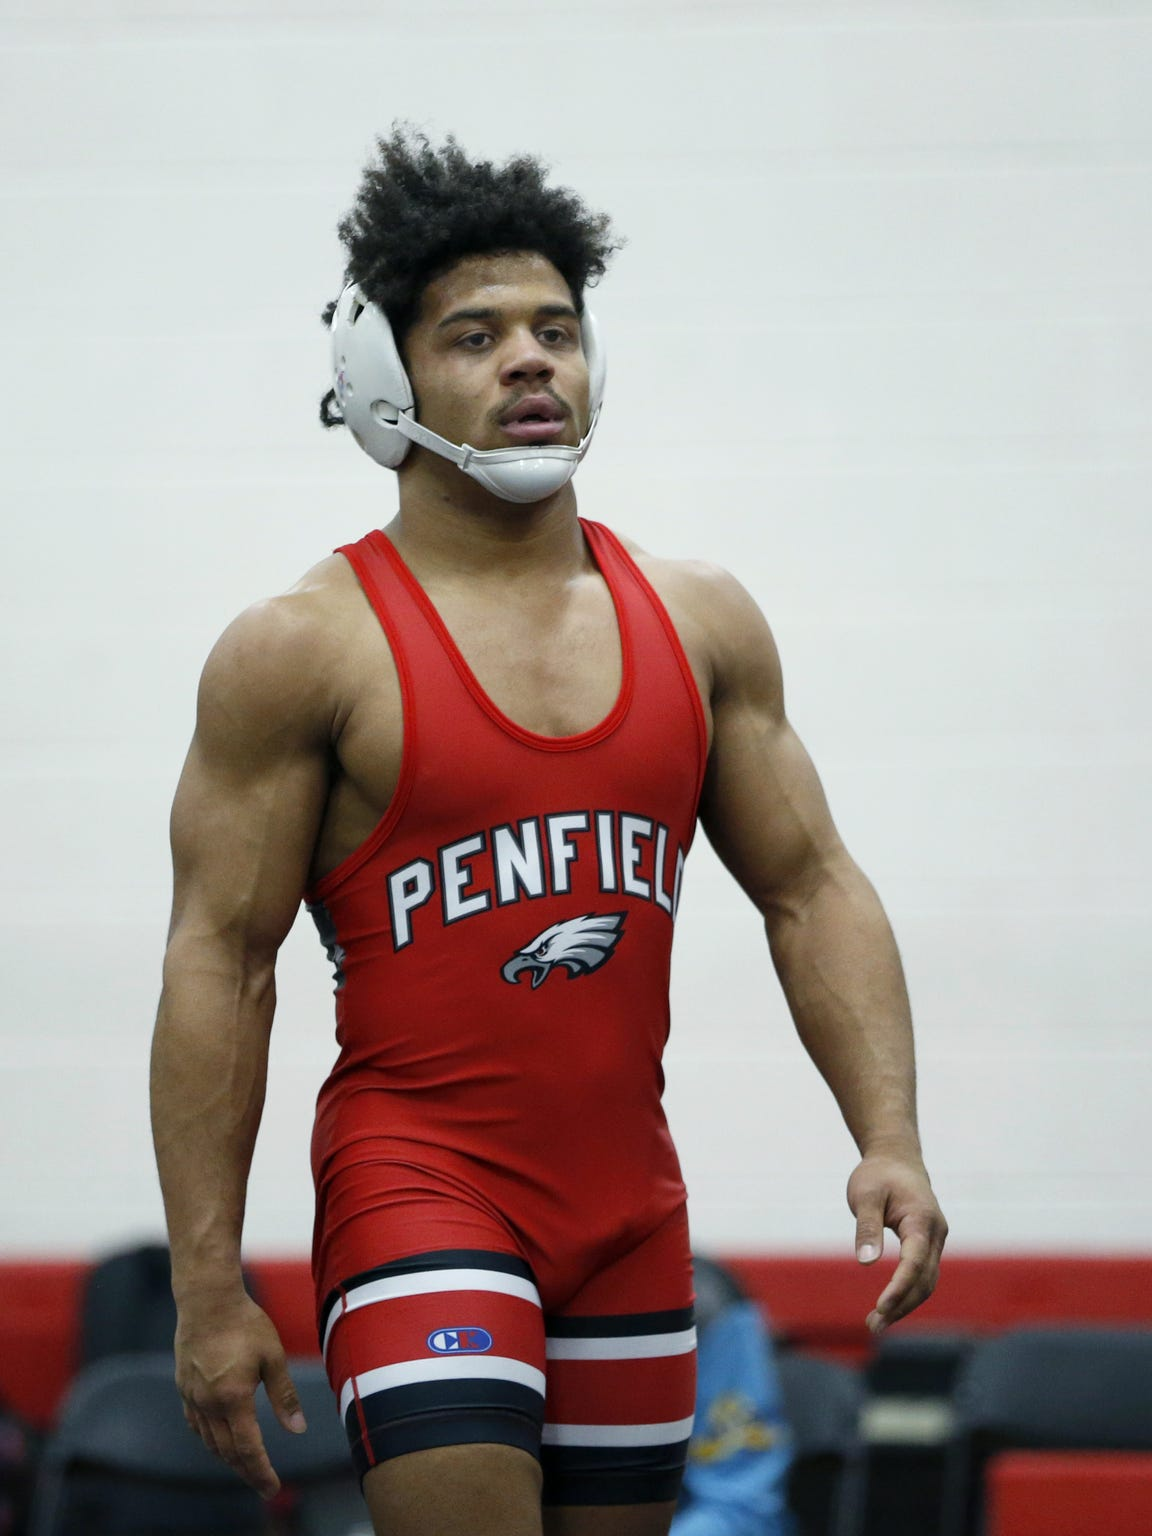 Penfield's Frankie Gissendanner was a four-time state